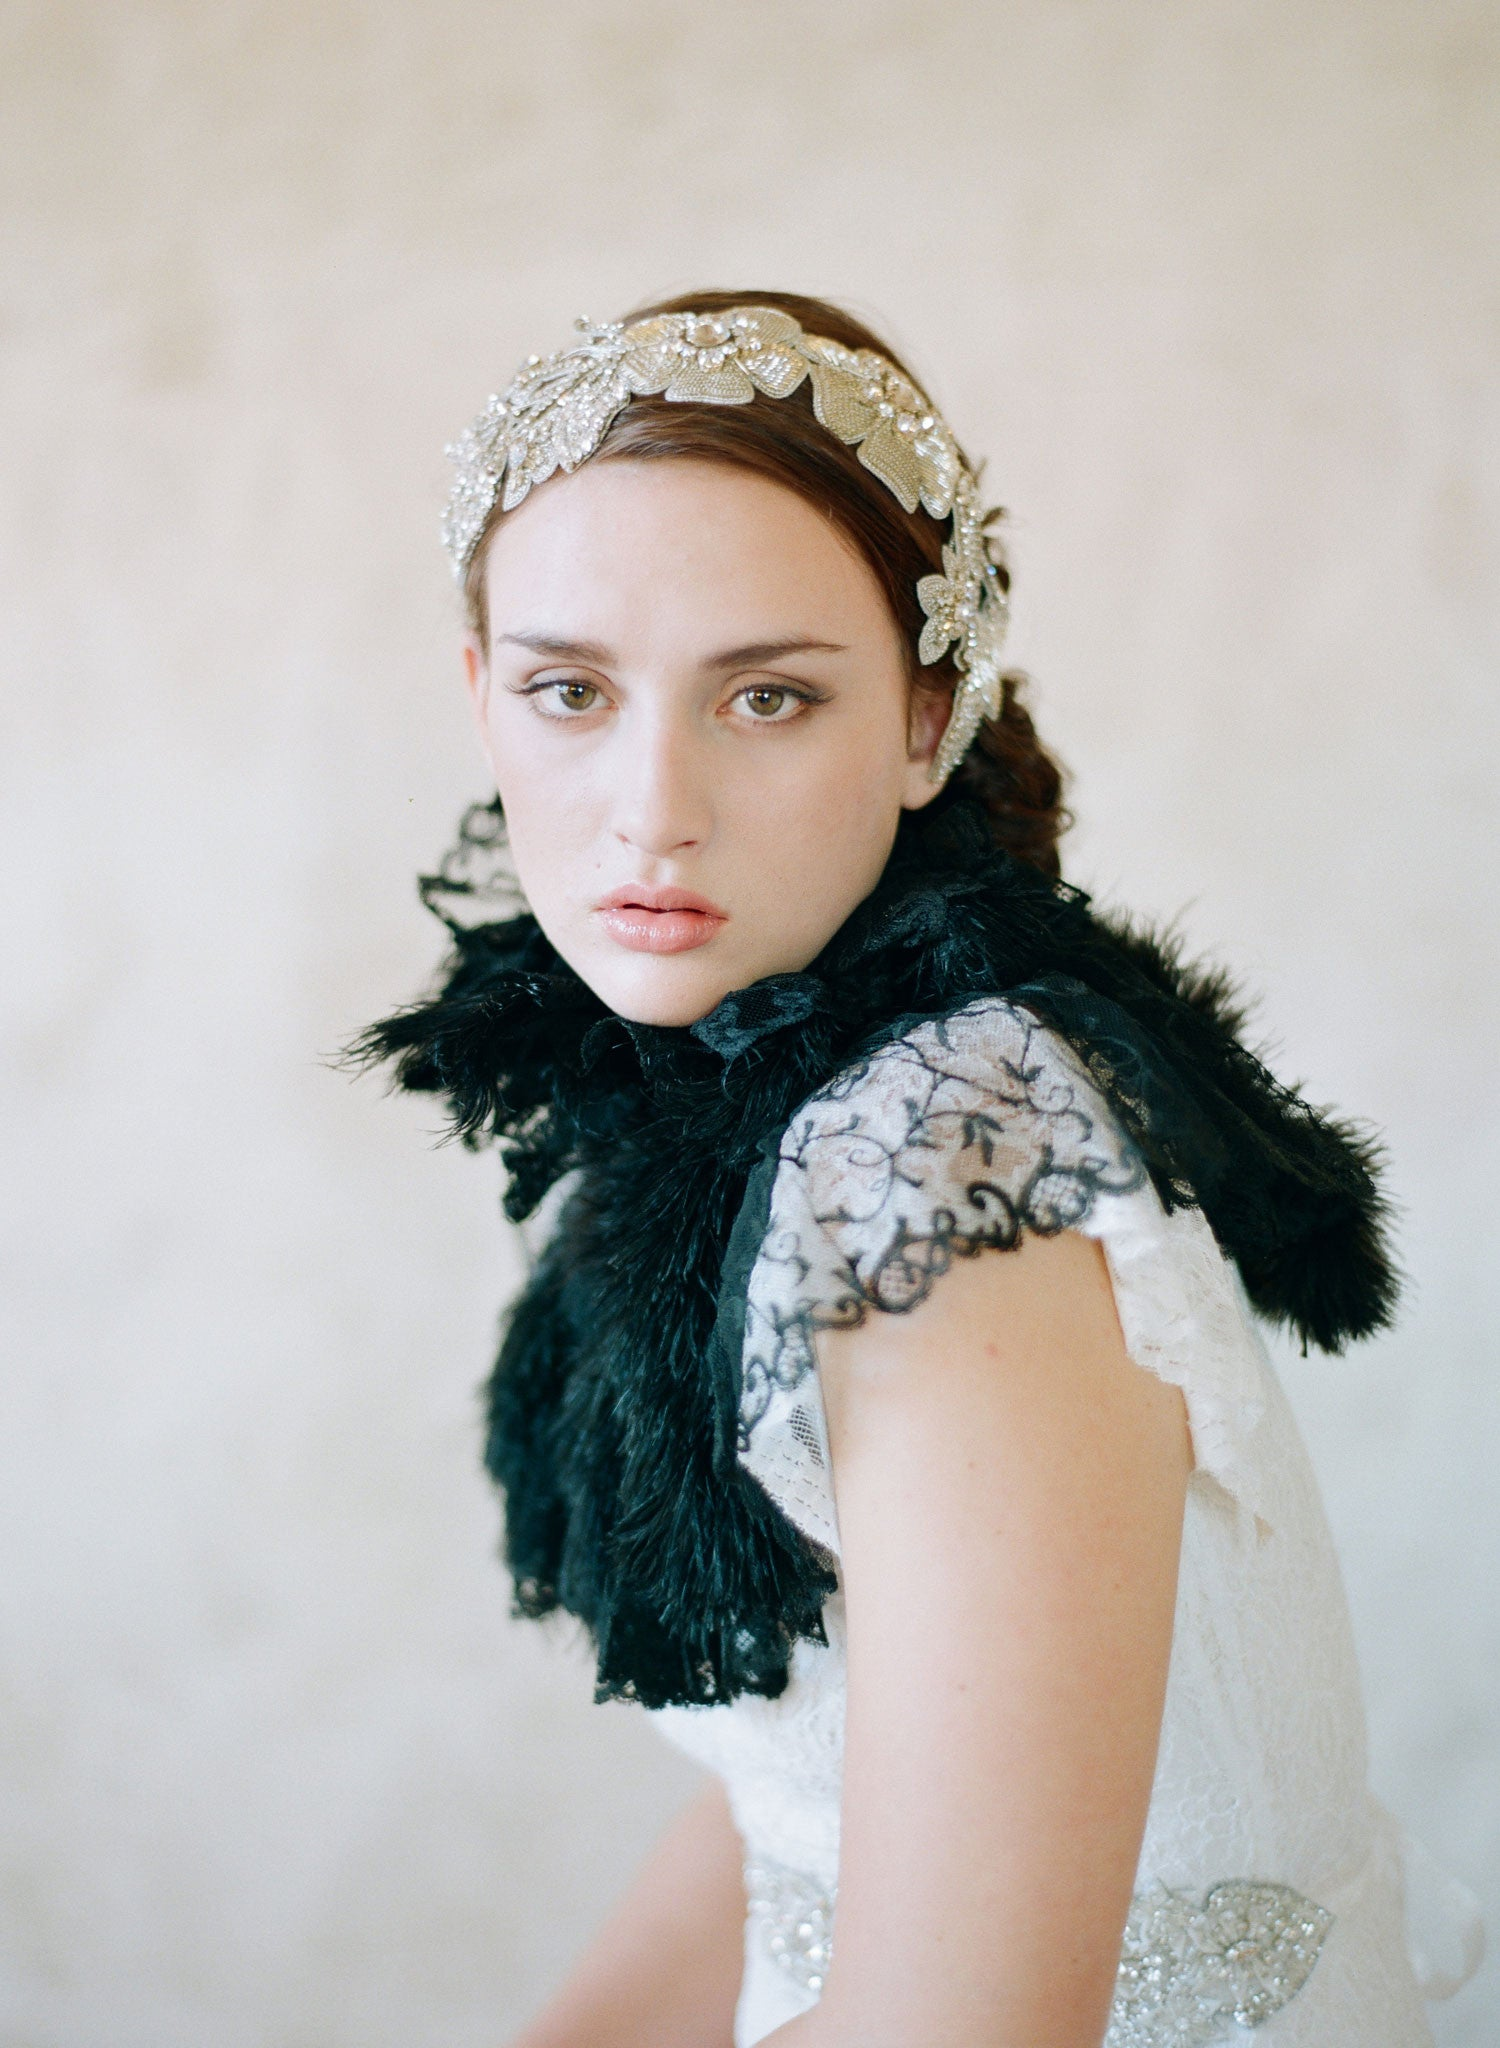 Glistening flower and crystal headband - Style #563